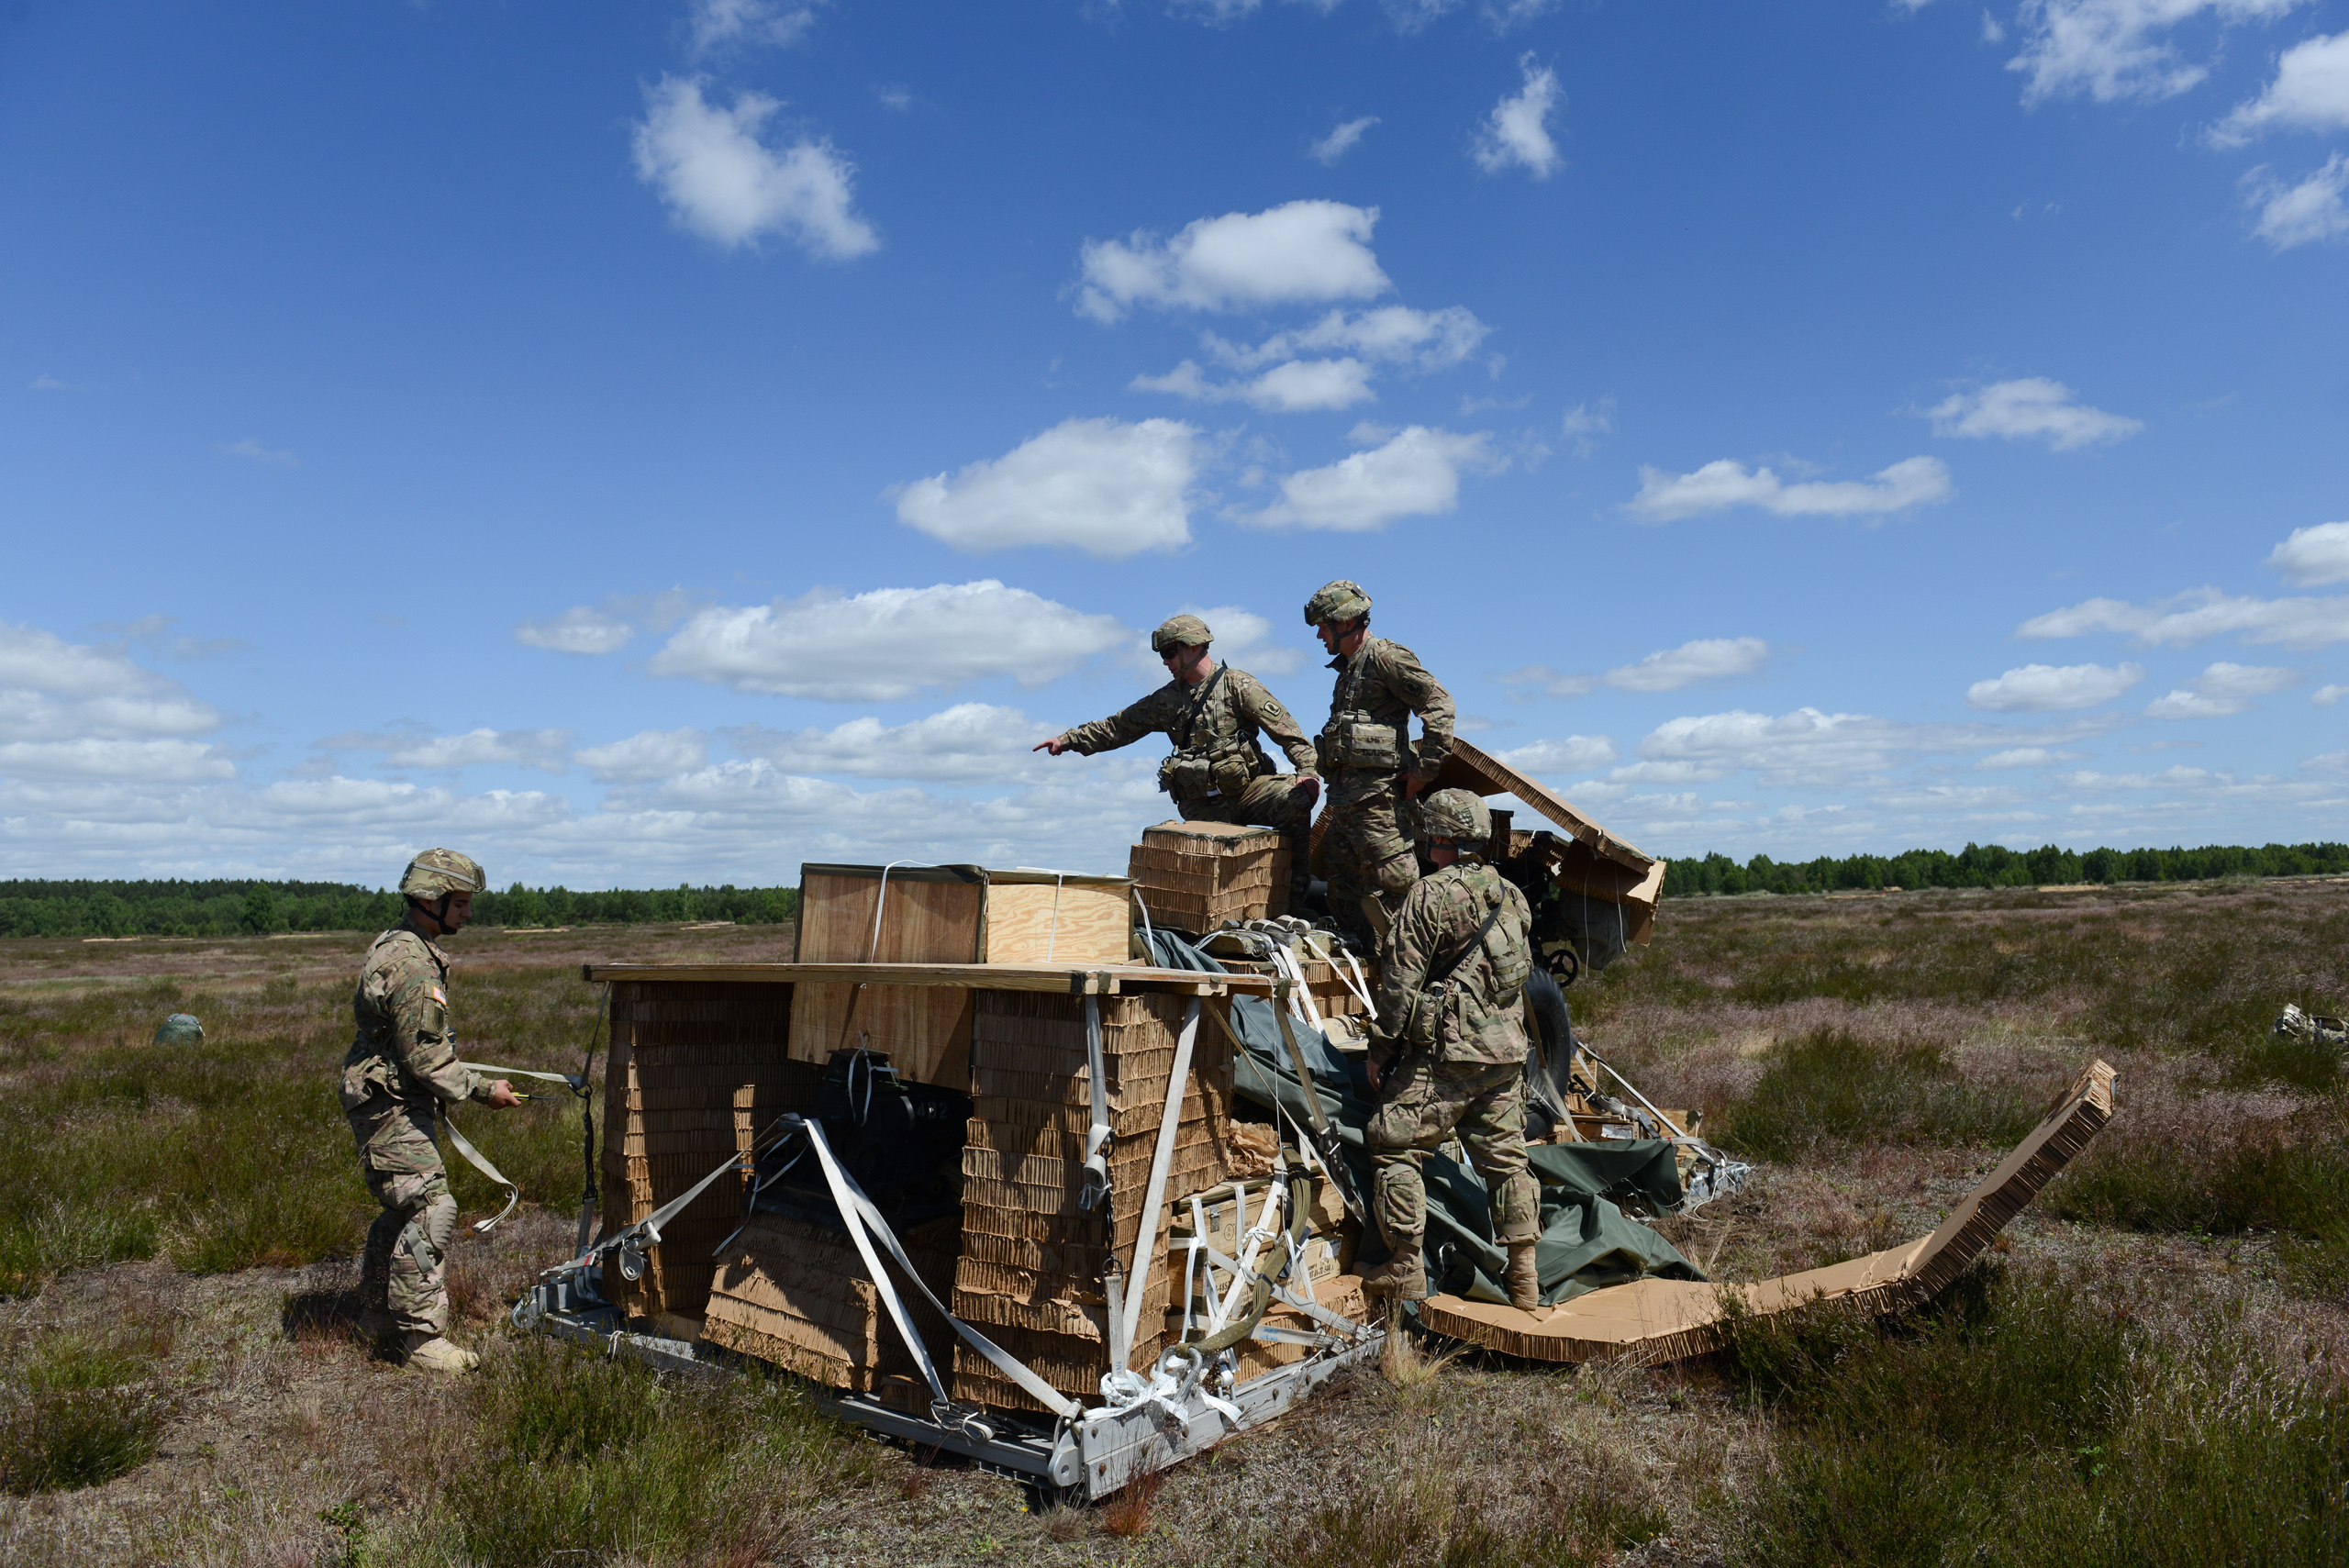 American soldiers with the Fourth of the 319th Airborne Field Artillery Regiment of the 173rd Infantry Brigade Combat Team proceed to assemble a howitzer following an airdrop from a C-17 aircraft that took off from Nuremberg, Germany and dropped at the Drawsko Pomorskie Training Area in Poland on June 15, 2015.